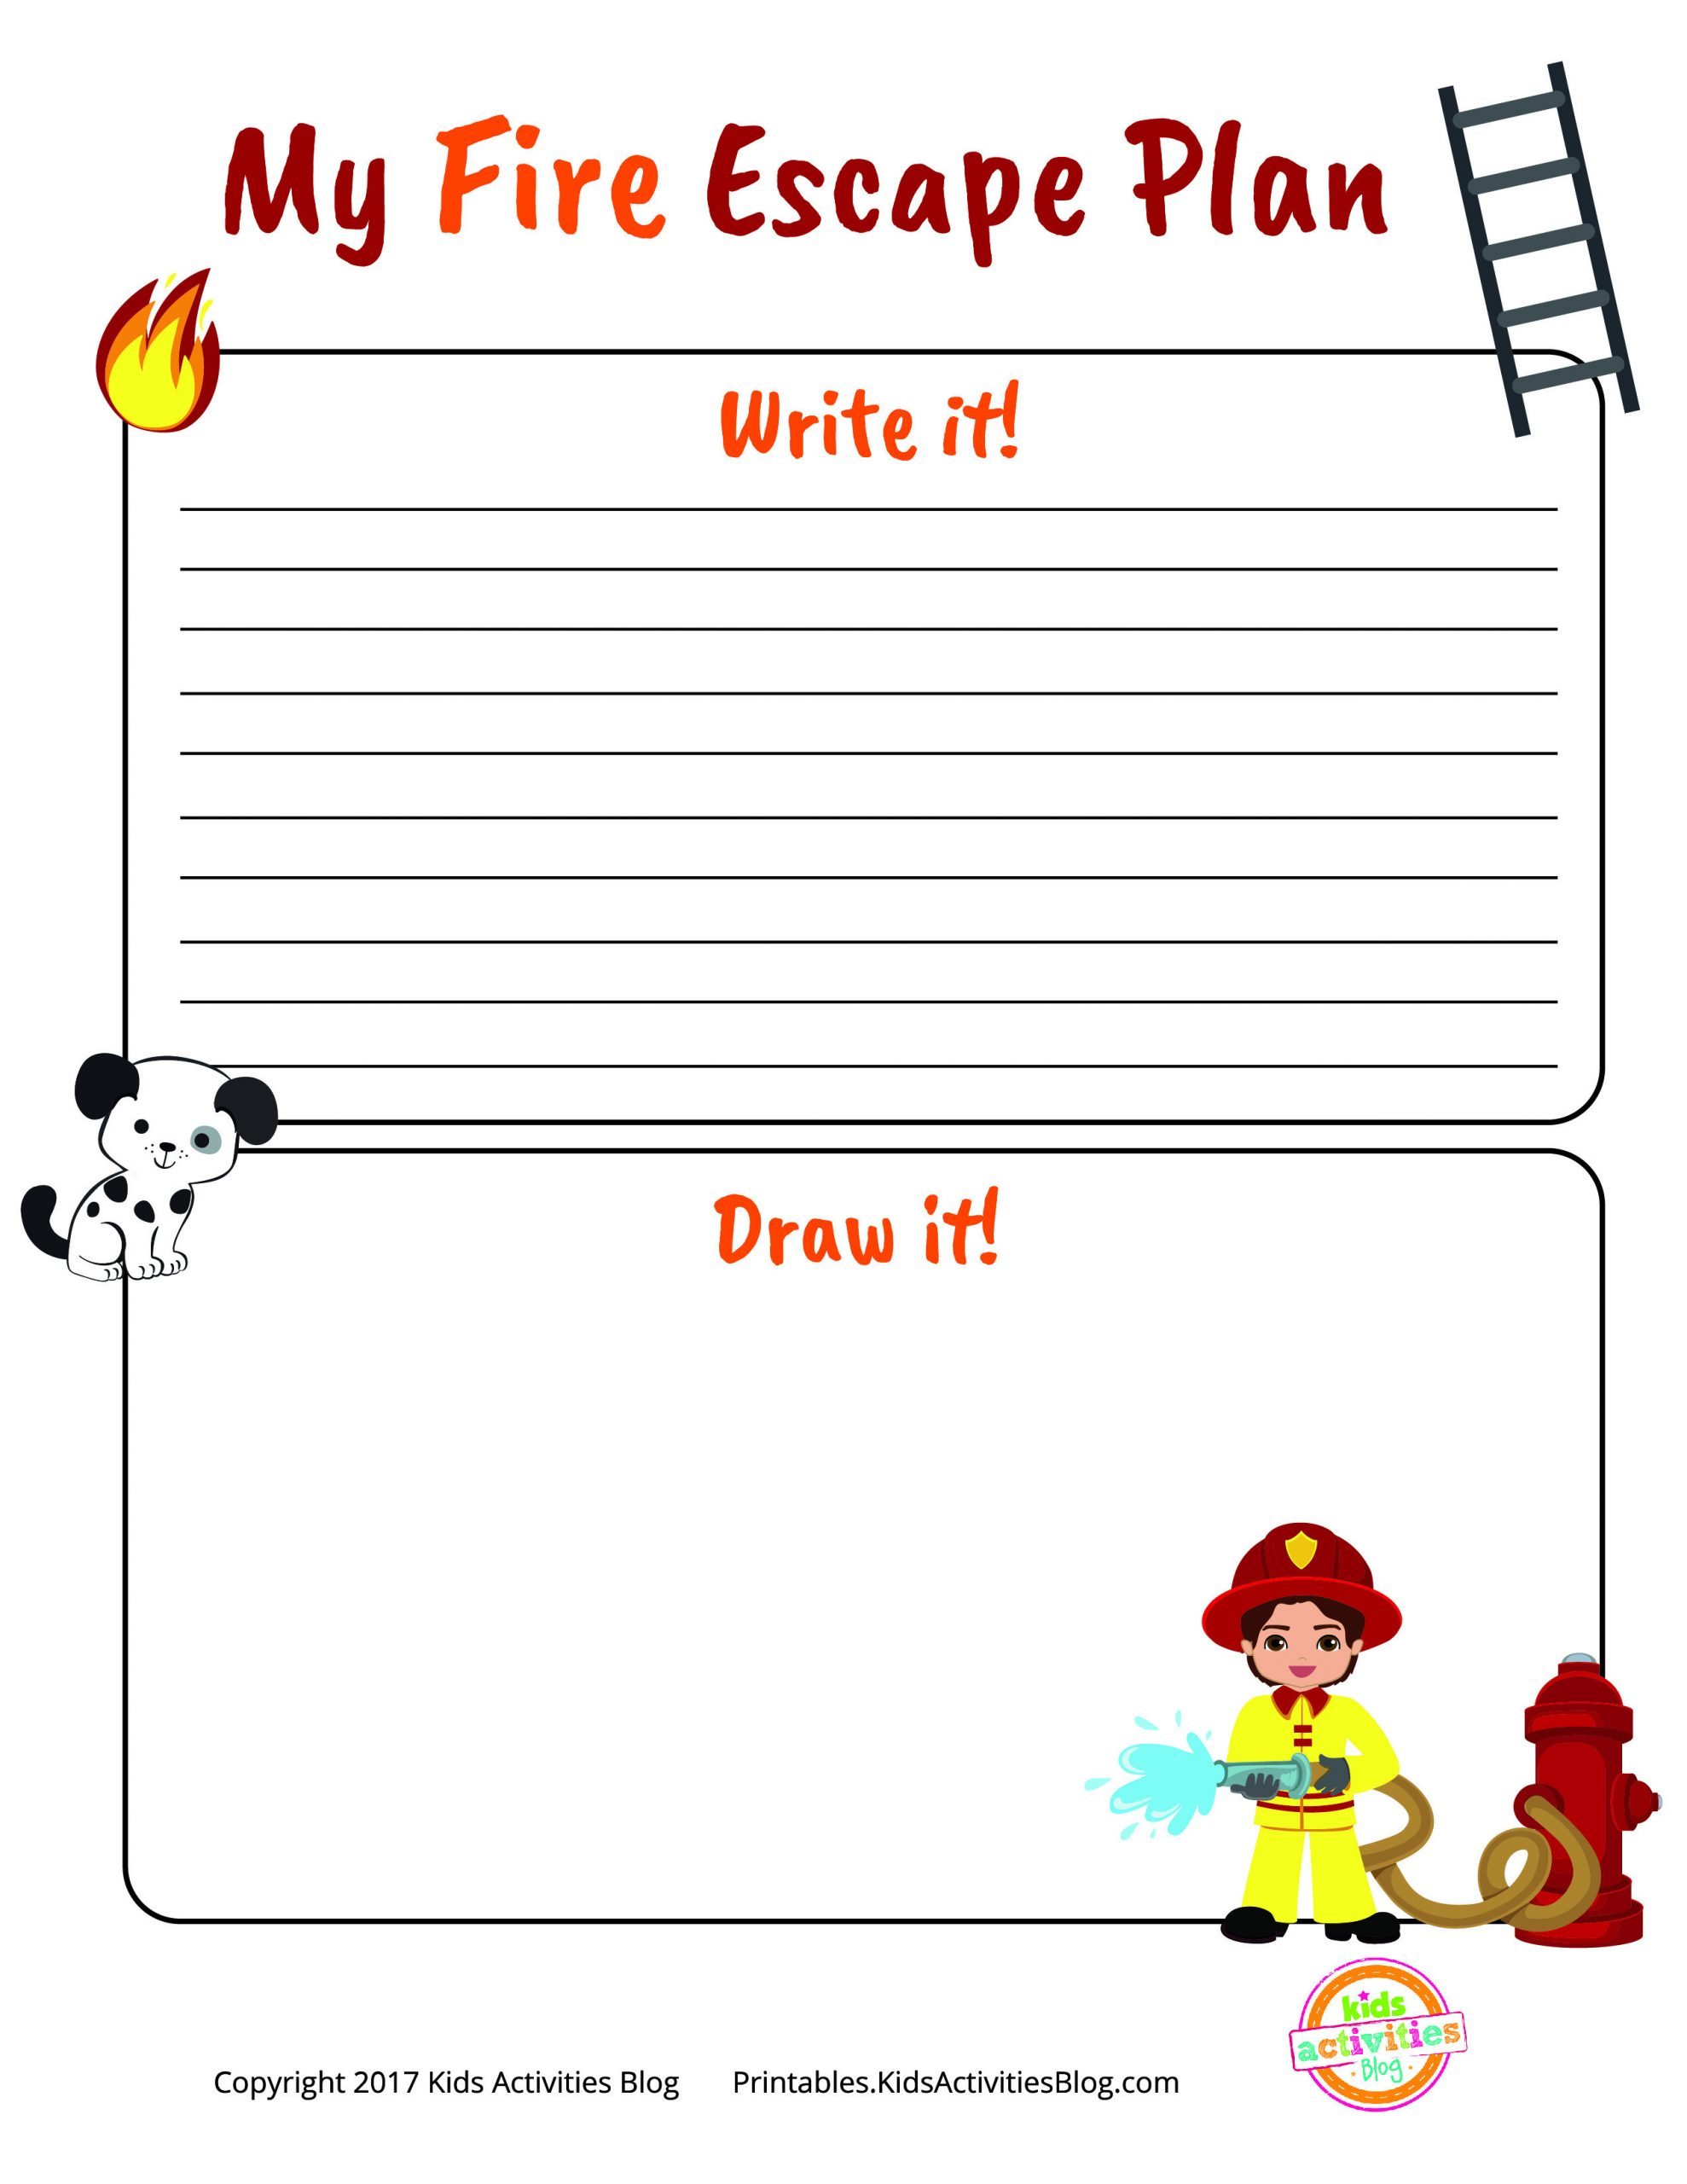 Free Printable Fire Safety Worksheets Fire Escape Plan Printable for National Fire Prevention Week